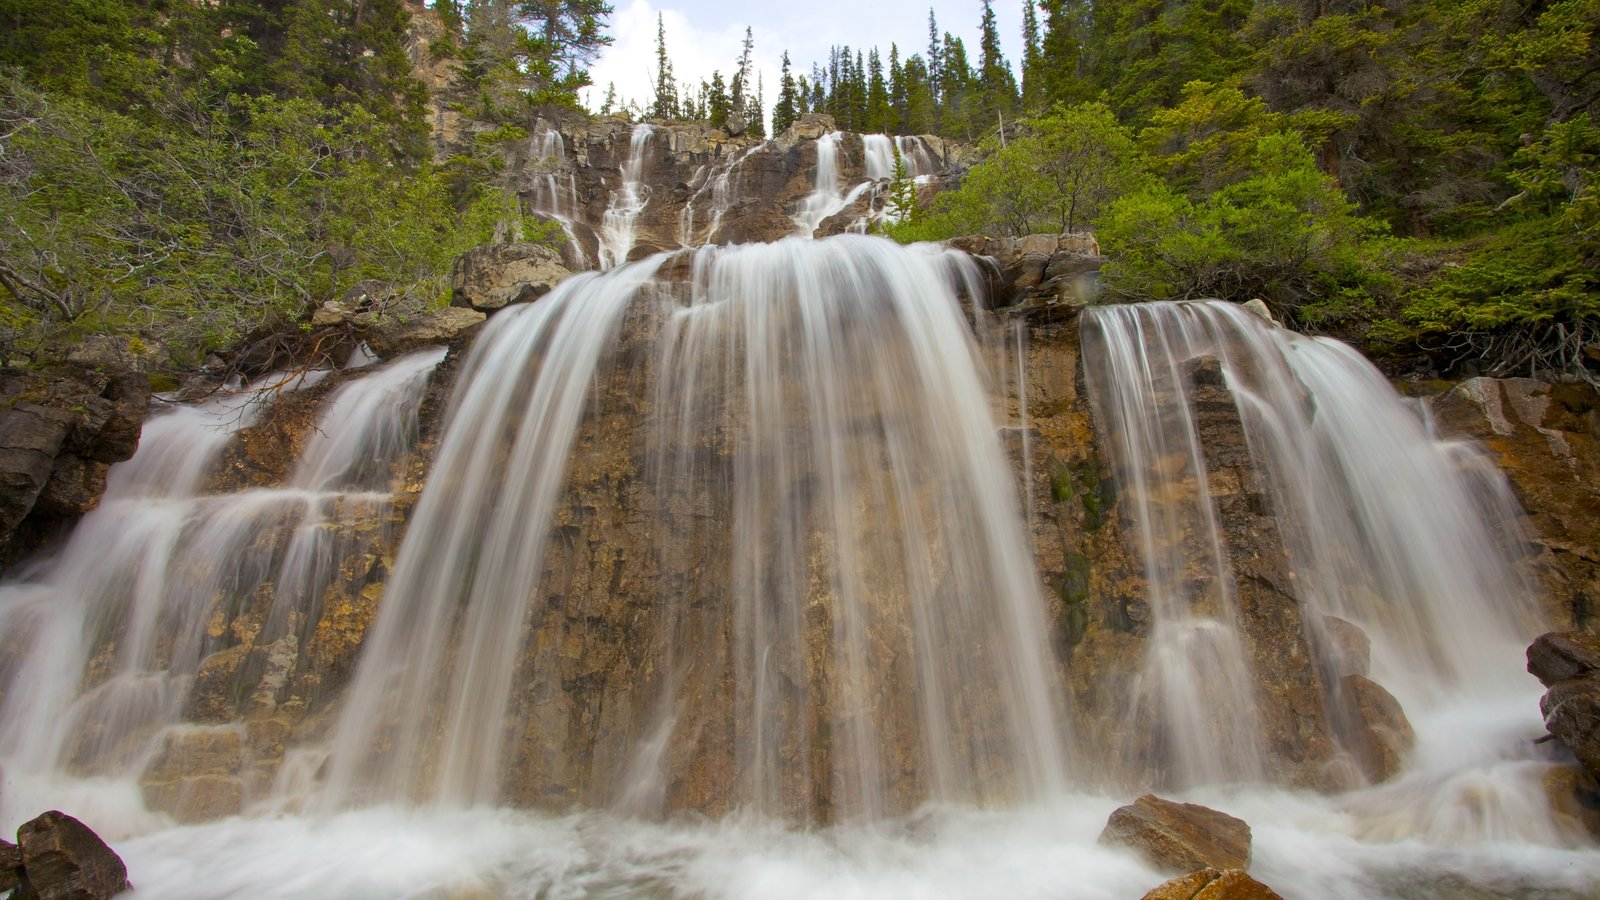 Tangle Falls which includes a cascade and forests